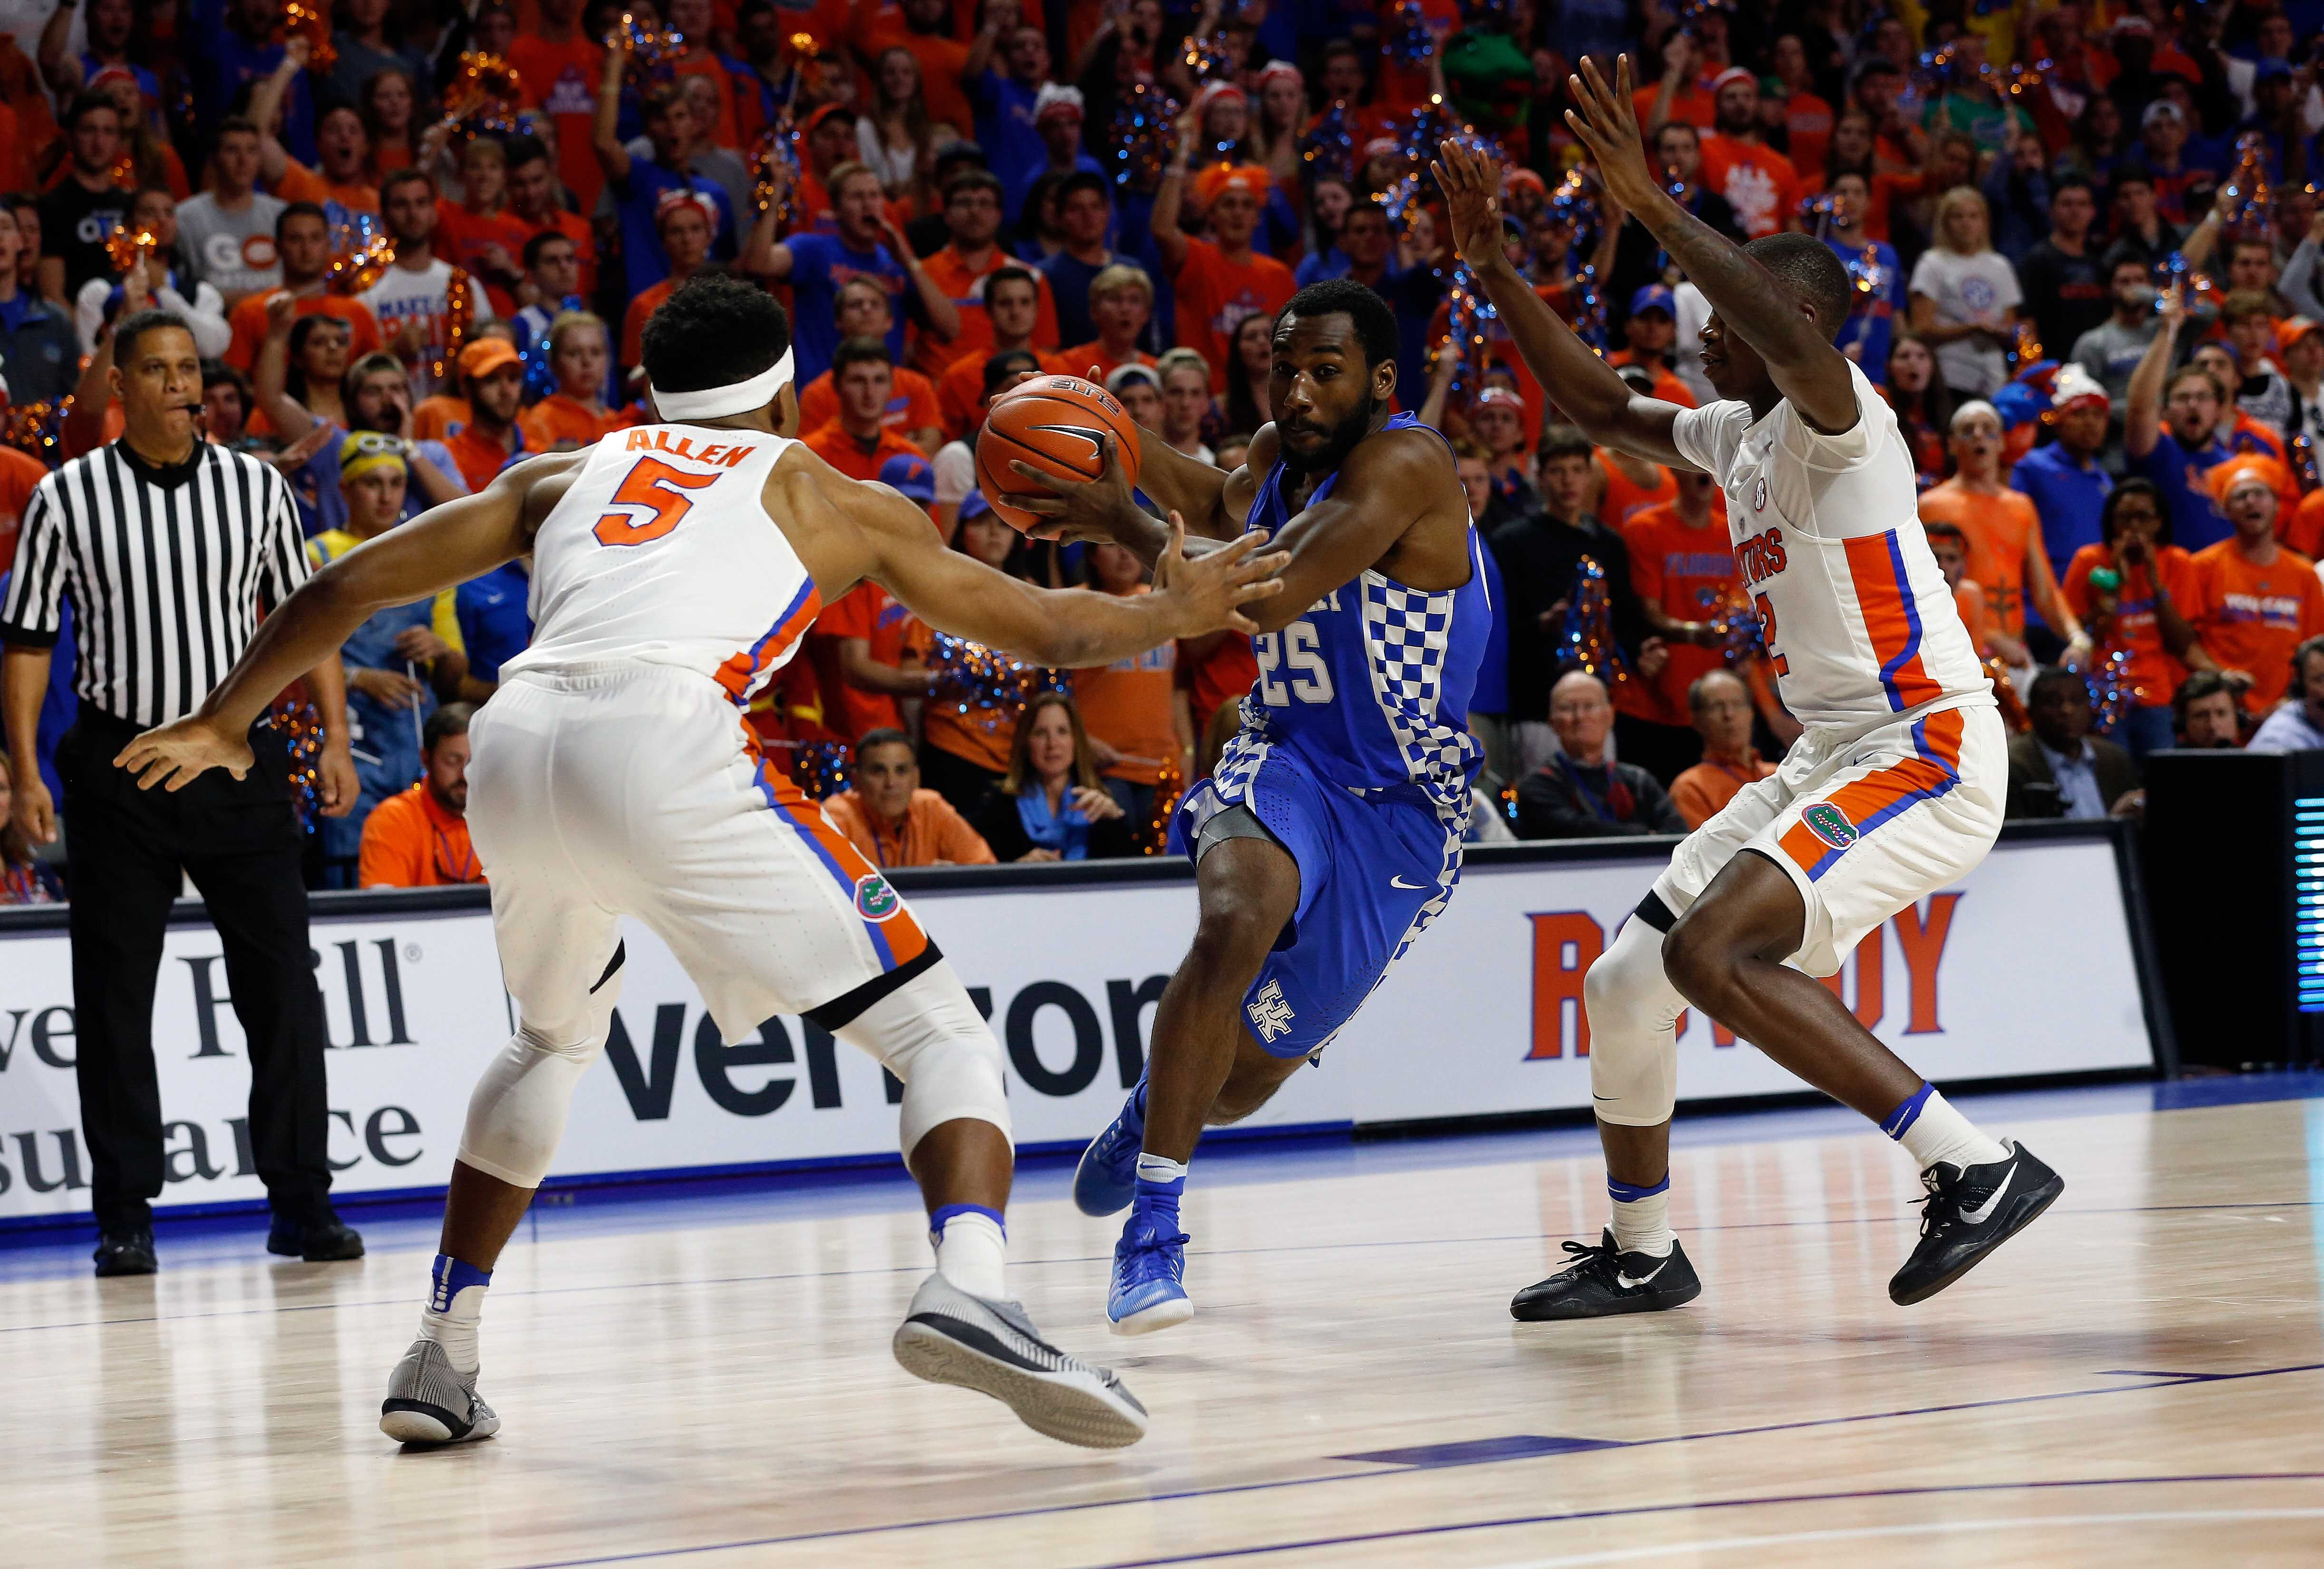 Kentucky Basketball What The Florida Win Means To The: Kentucky Basketball: A Florida Gators Win At Rupp Arena